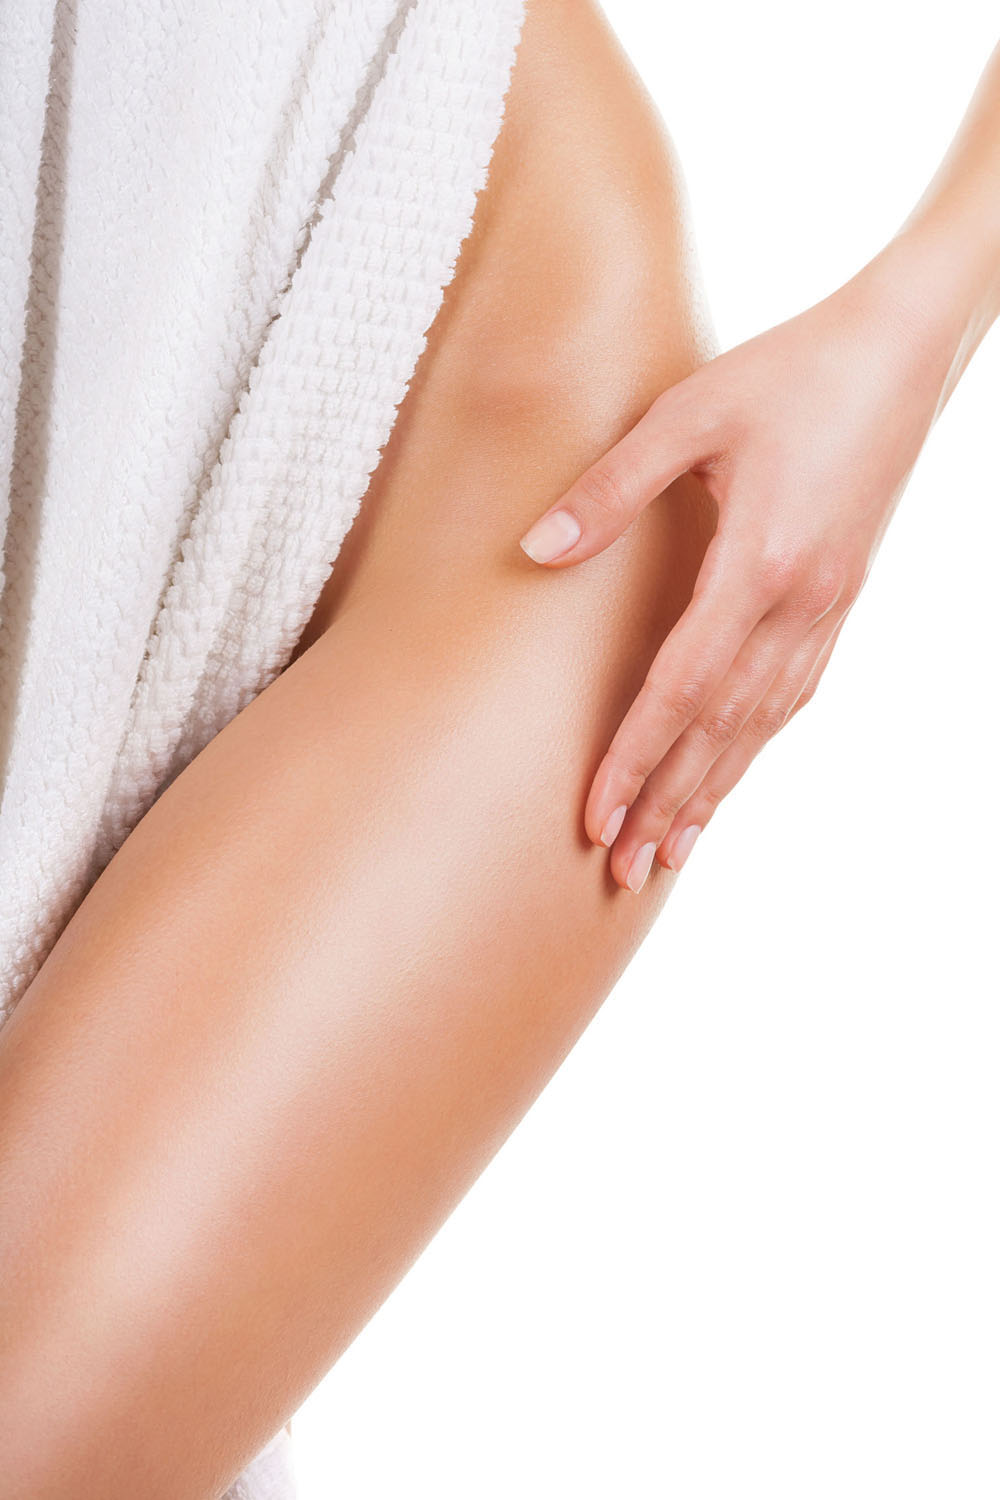 Deep Tissue Radiofrequency™ for focused fat sculpting, cellulite reduction and skin tightening on the body, by LipoTherapeia